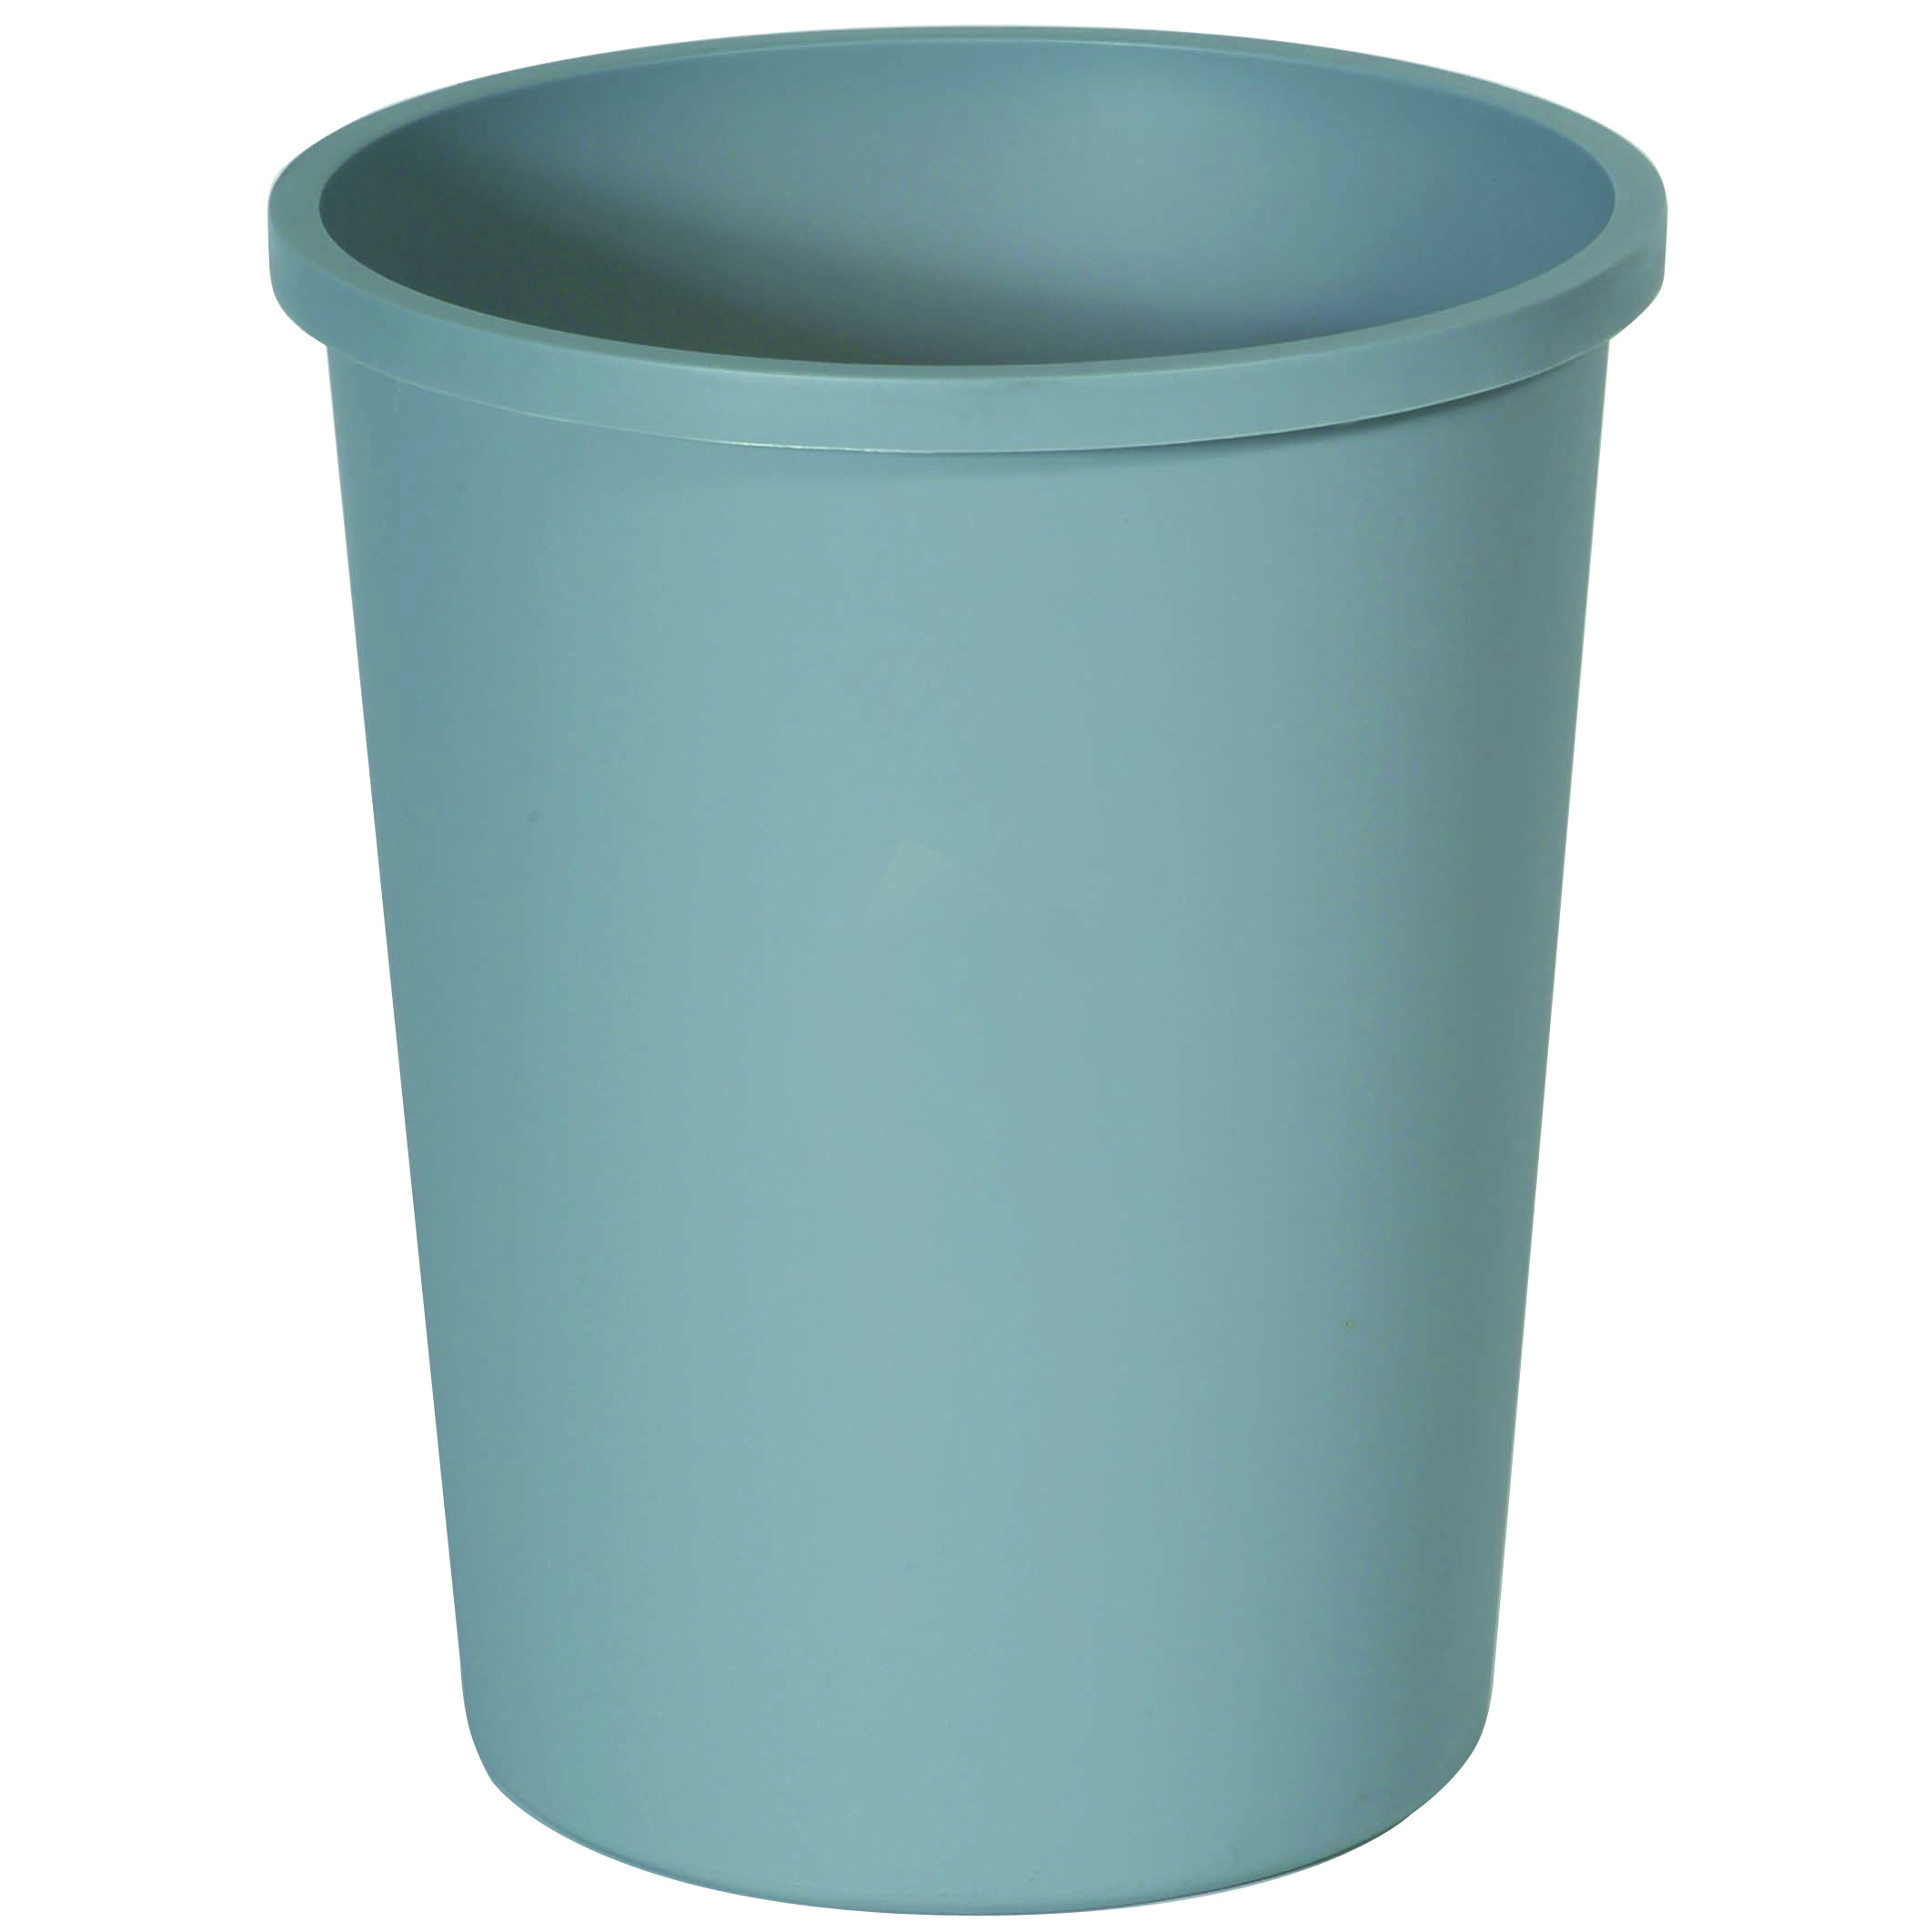 Small Untouchable Round Trash Can